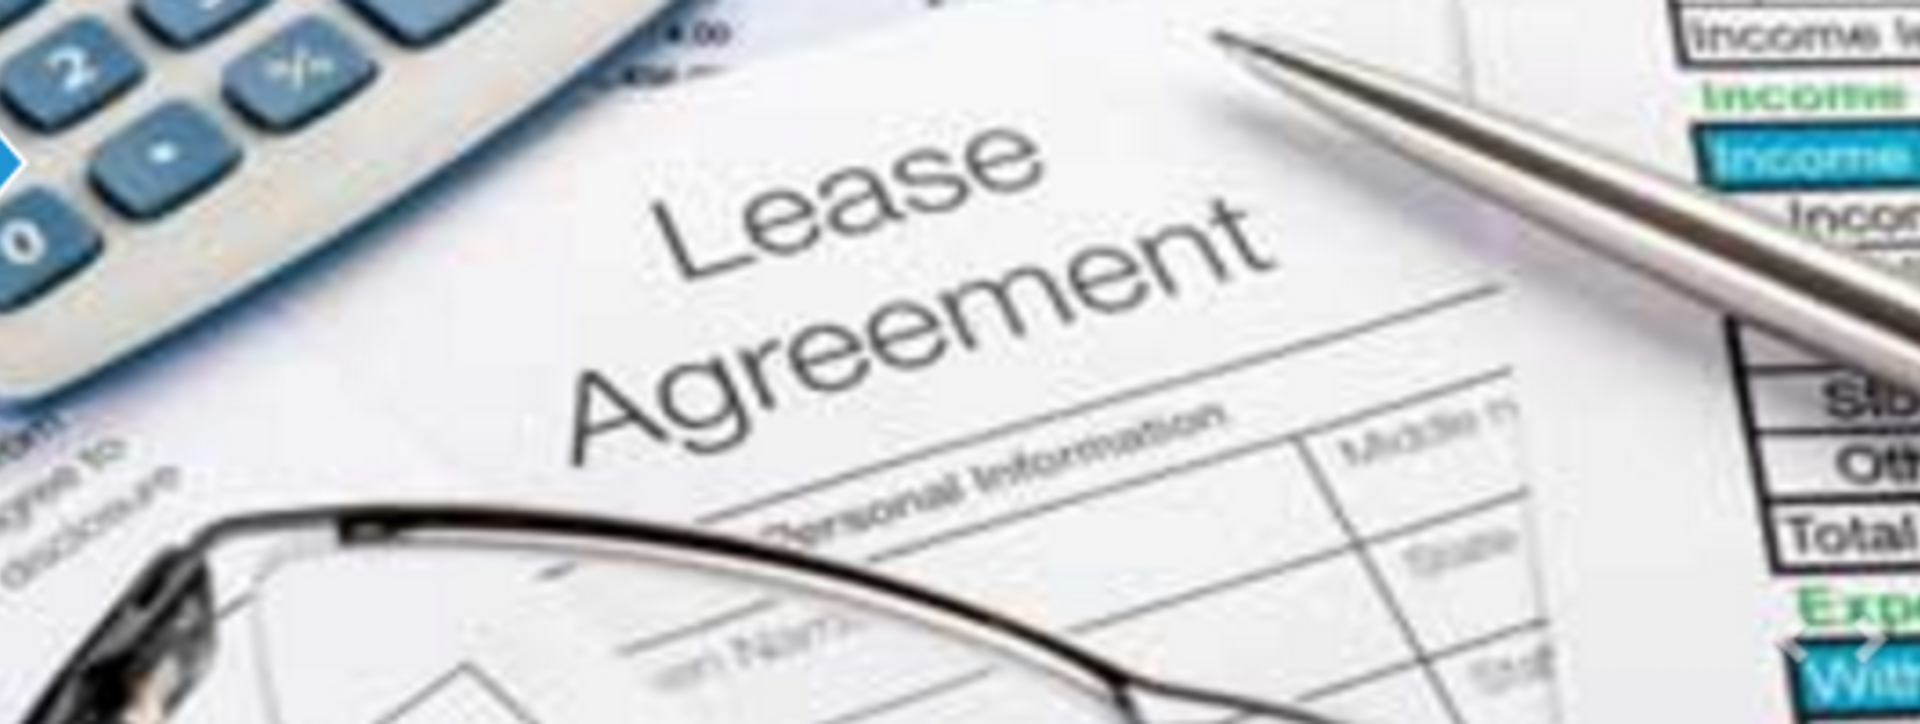 Leasing Residential Property? What you need to know.